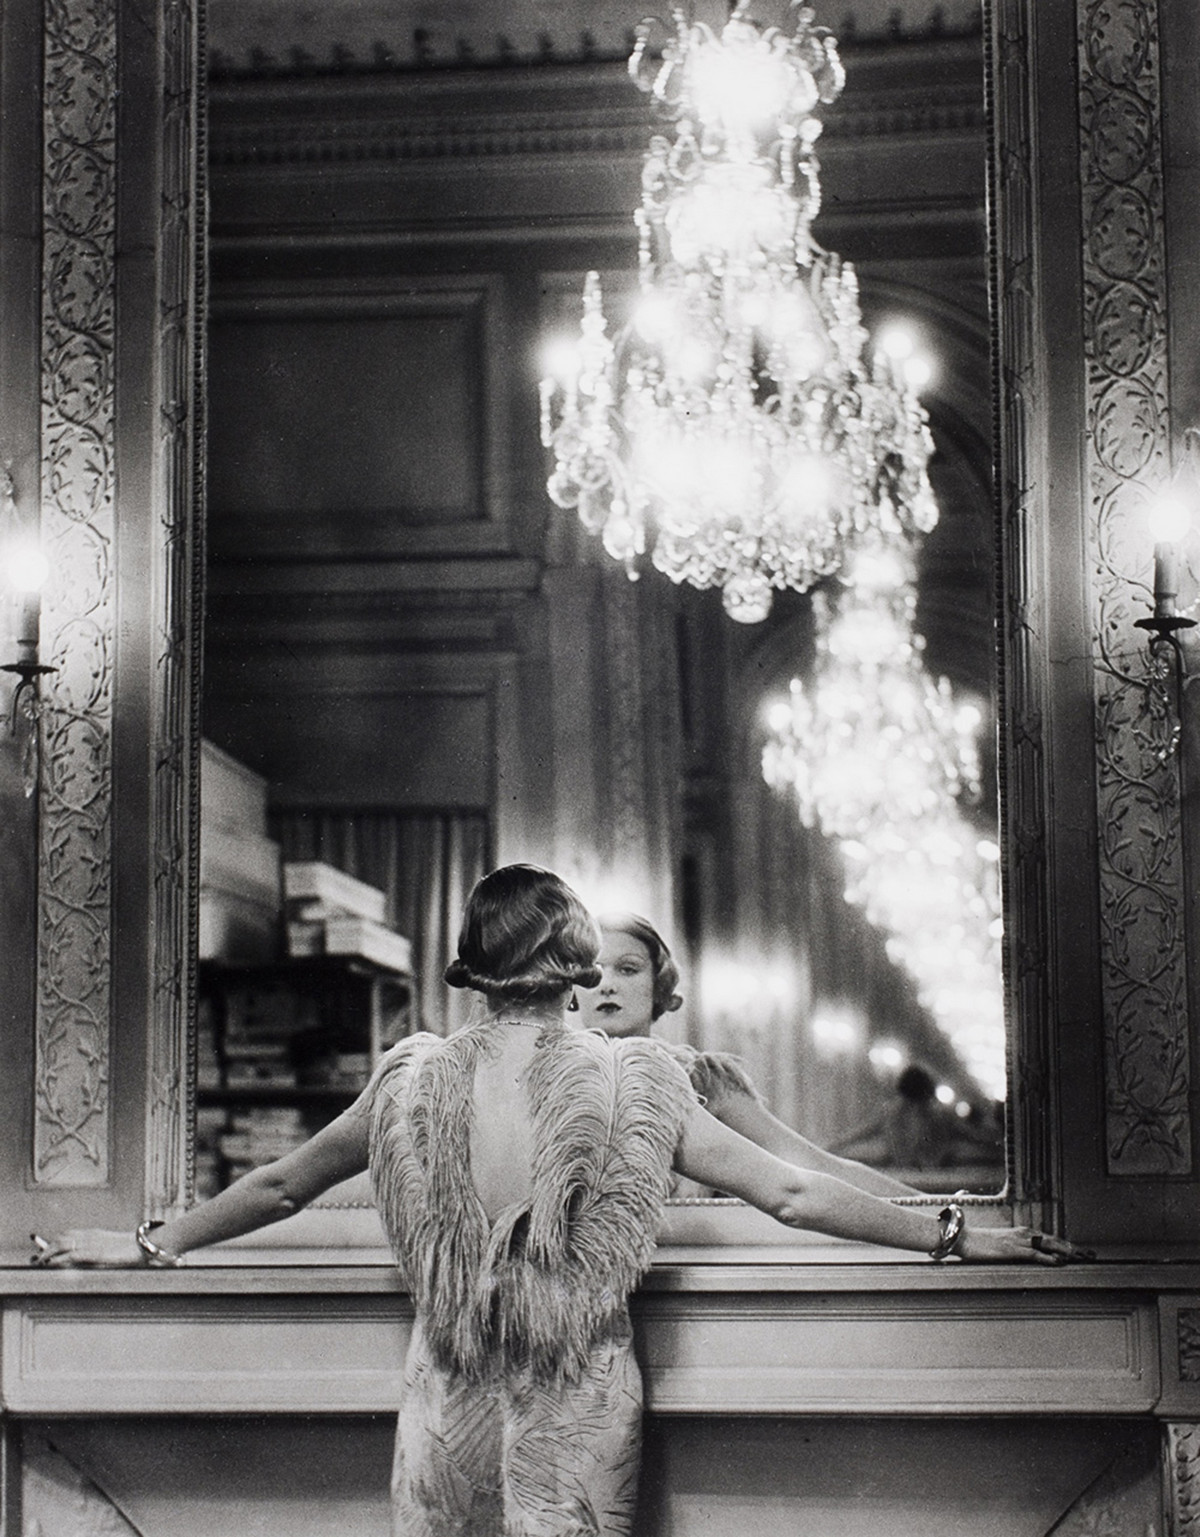 Model looking into a large mirror, Paris, France, 1932.